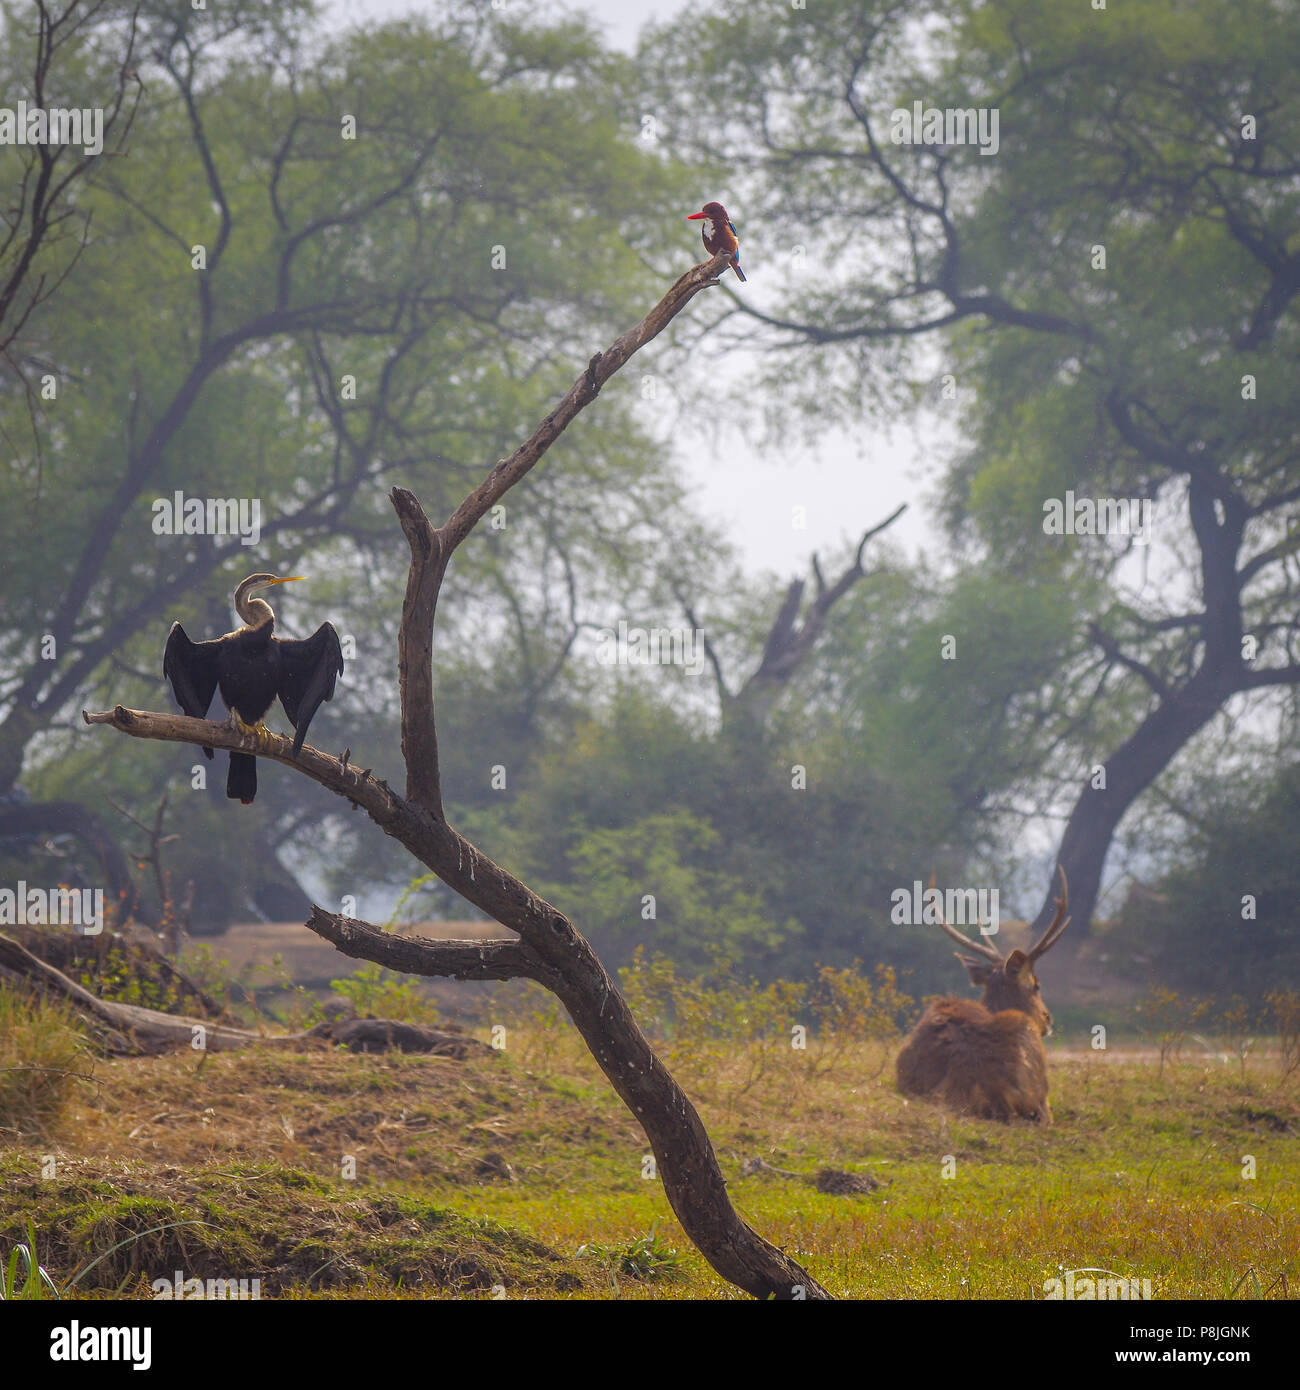 Kingfisher, Darter and Deer at Bharatpur Reserve - Stock Image